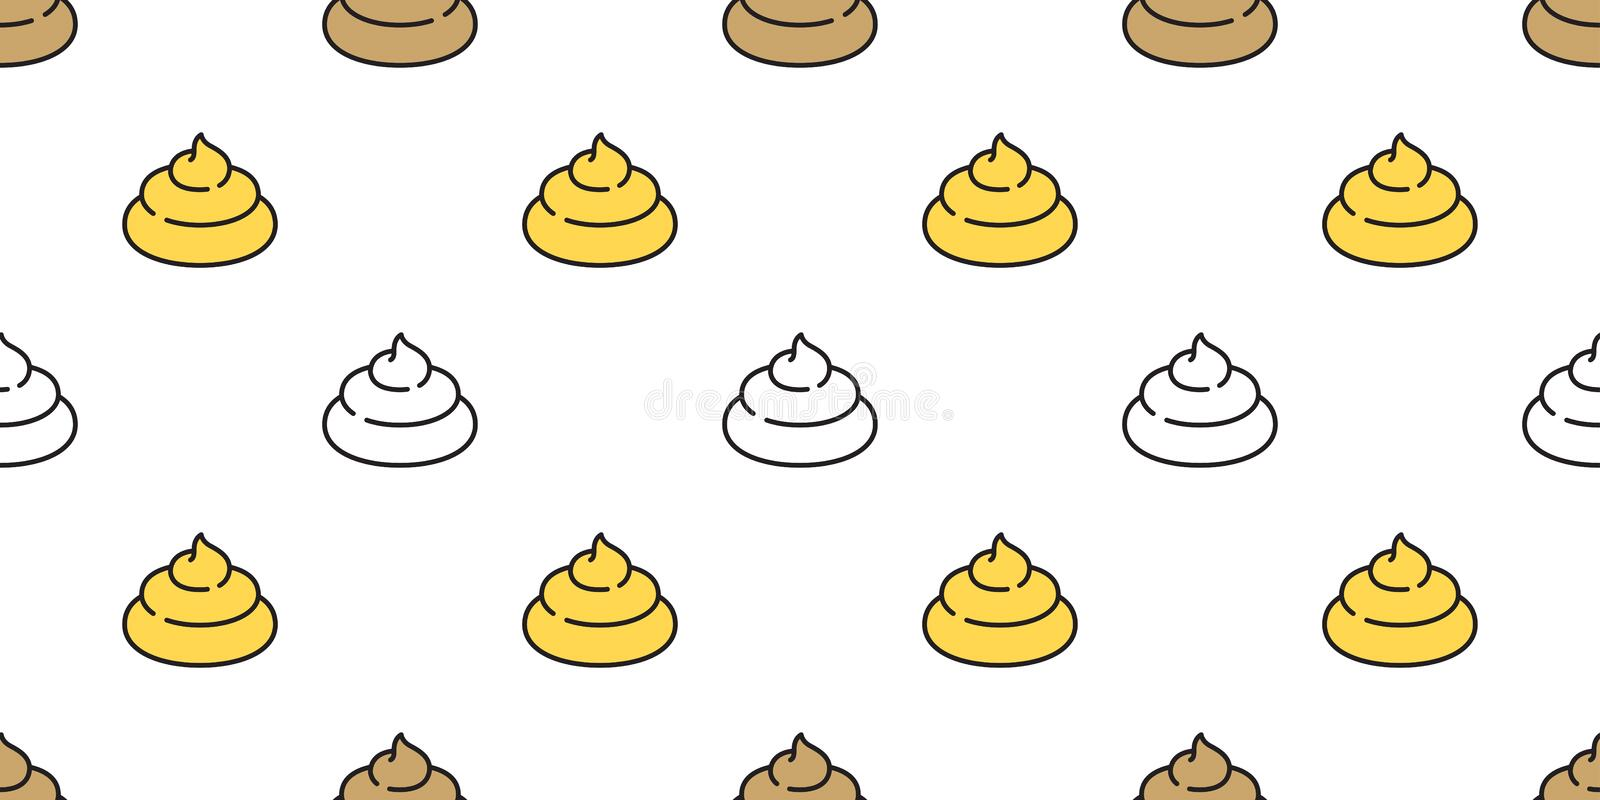 Poo seamless pattern vector isolated dog repeat wallpaper tile background icon Cartoon illustration. Cute royalty free illustration